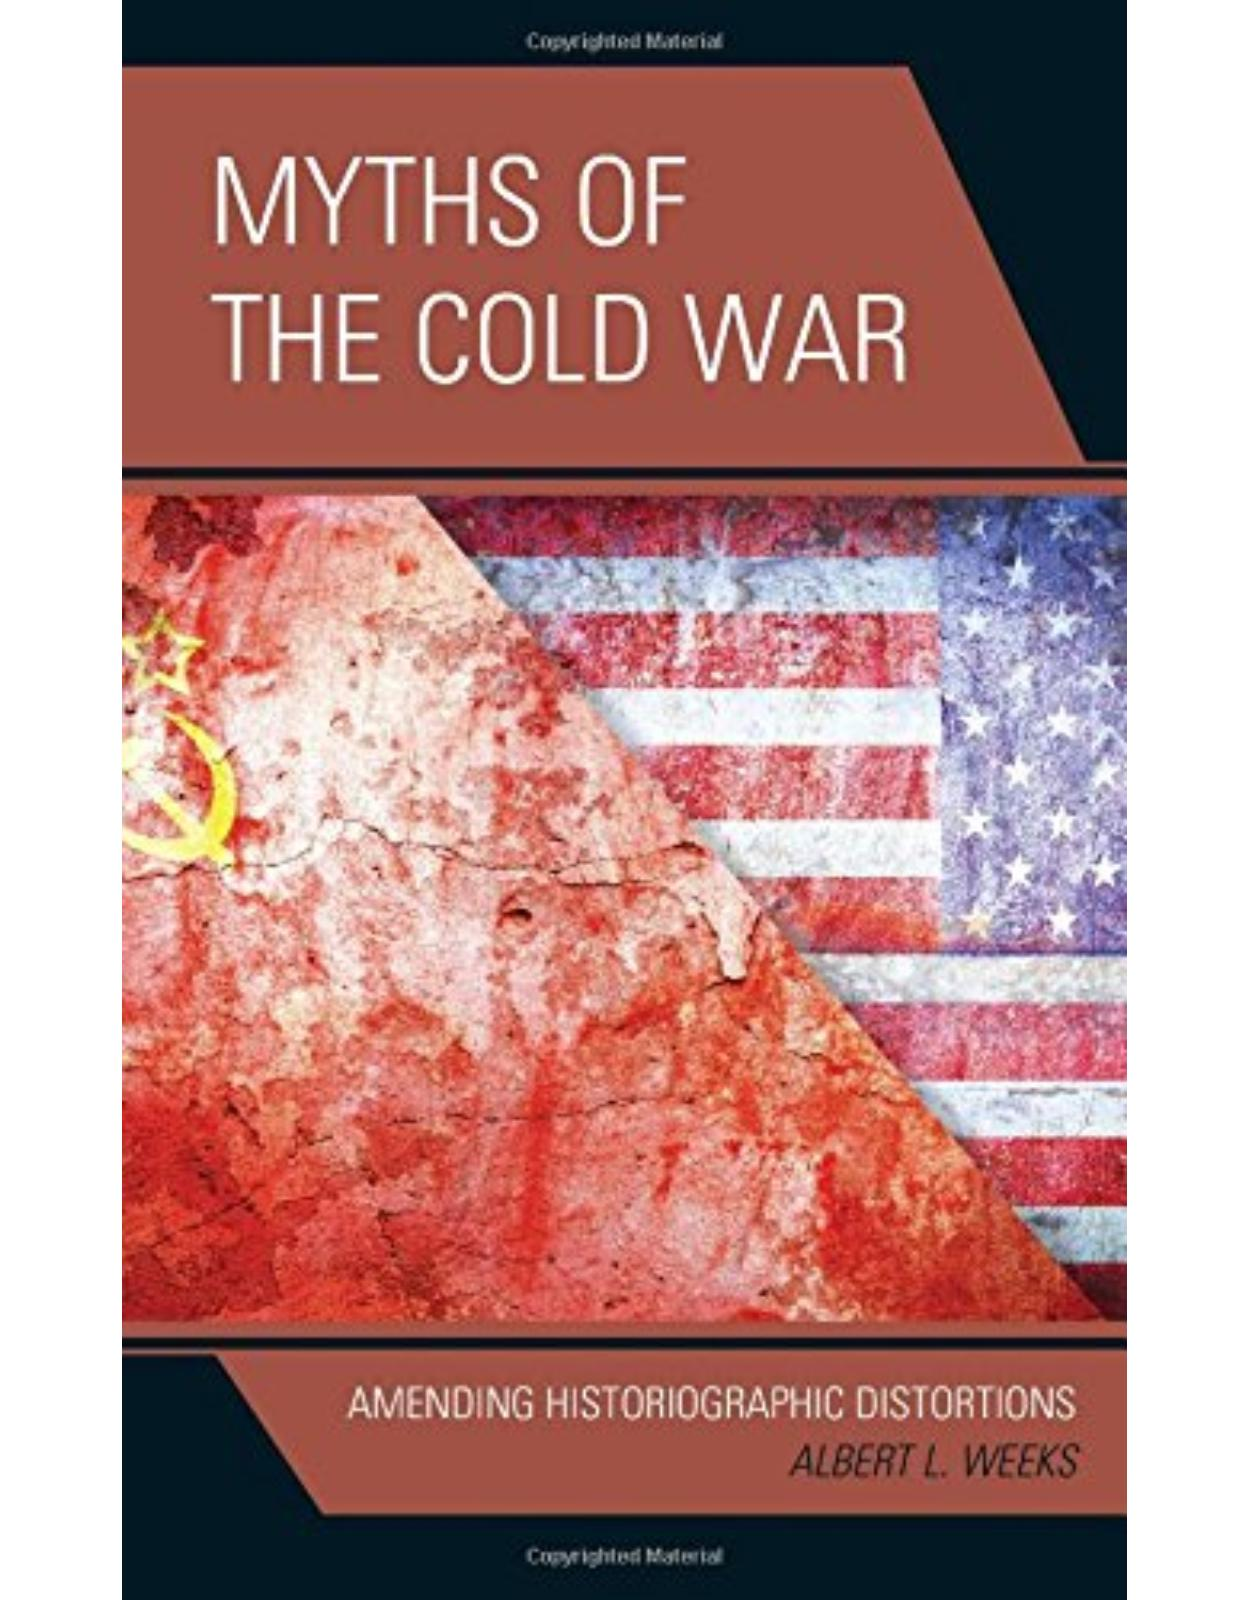 Myths of the Cold War: Amending Historiographic Distortions